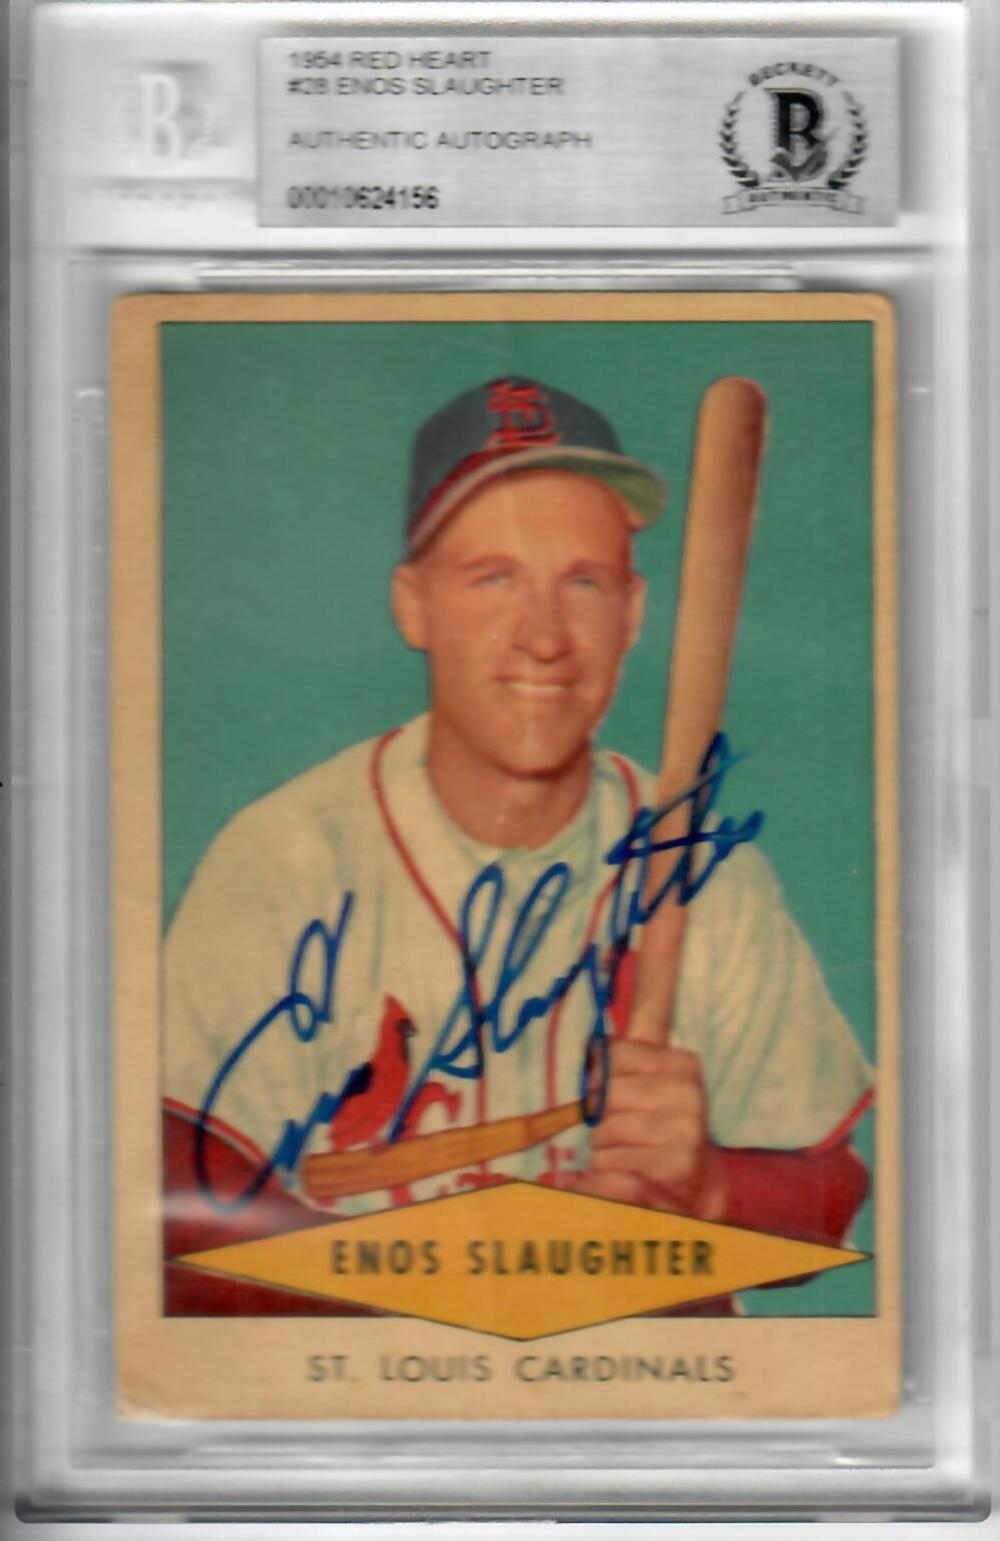 1954 Red Heart Enos Slaughter Baseball Card W Authentic